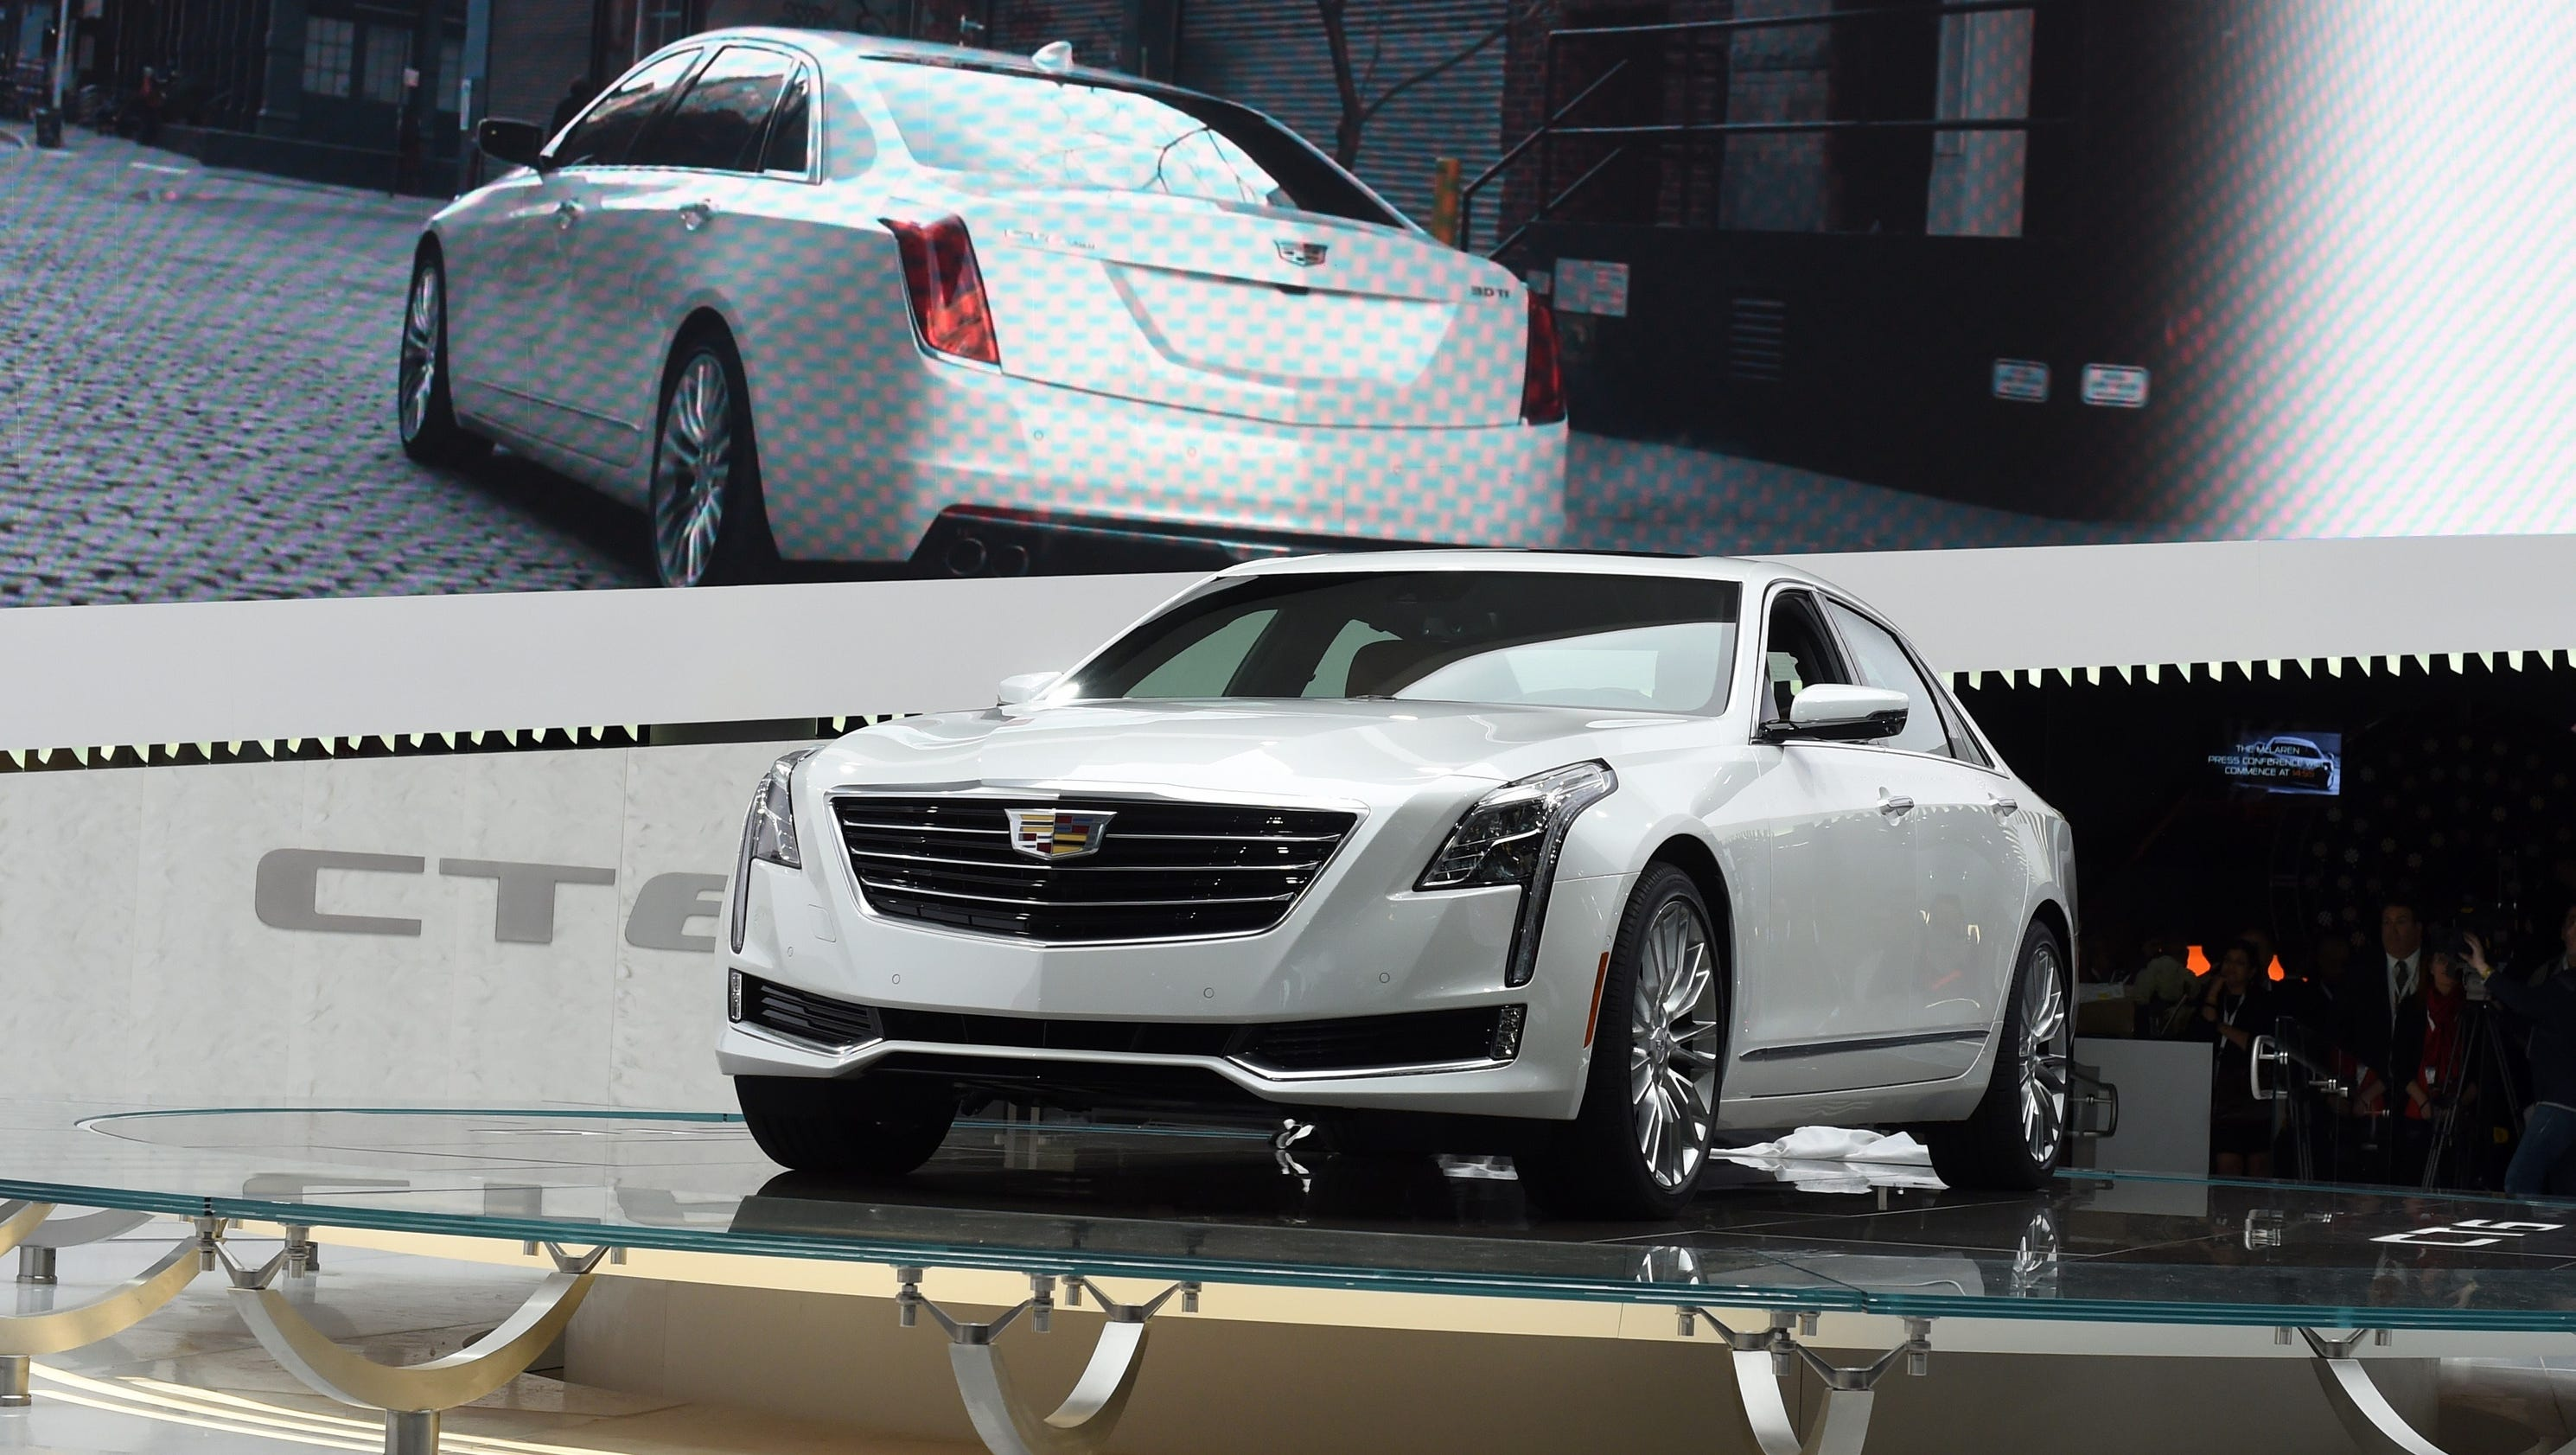 composite srx suv performance large groovecar research coast cadillac metallic crossover collection silver